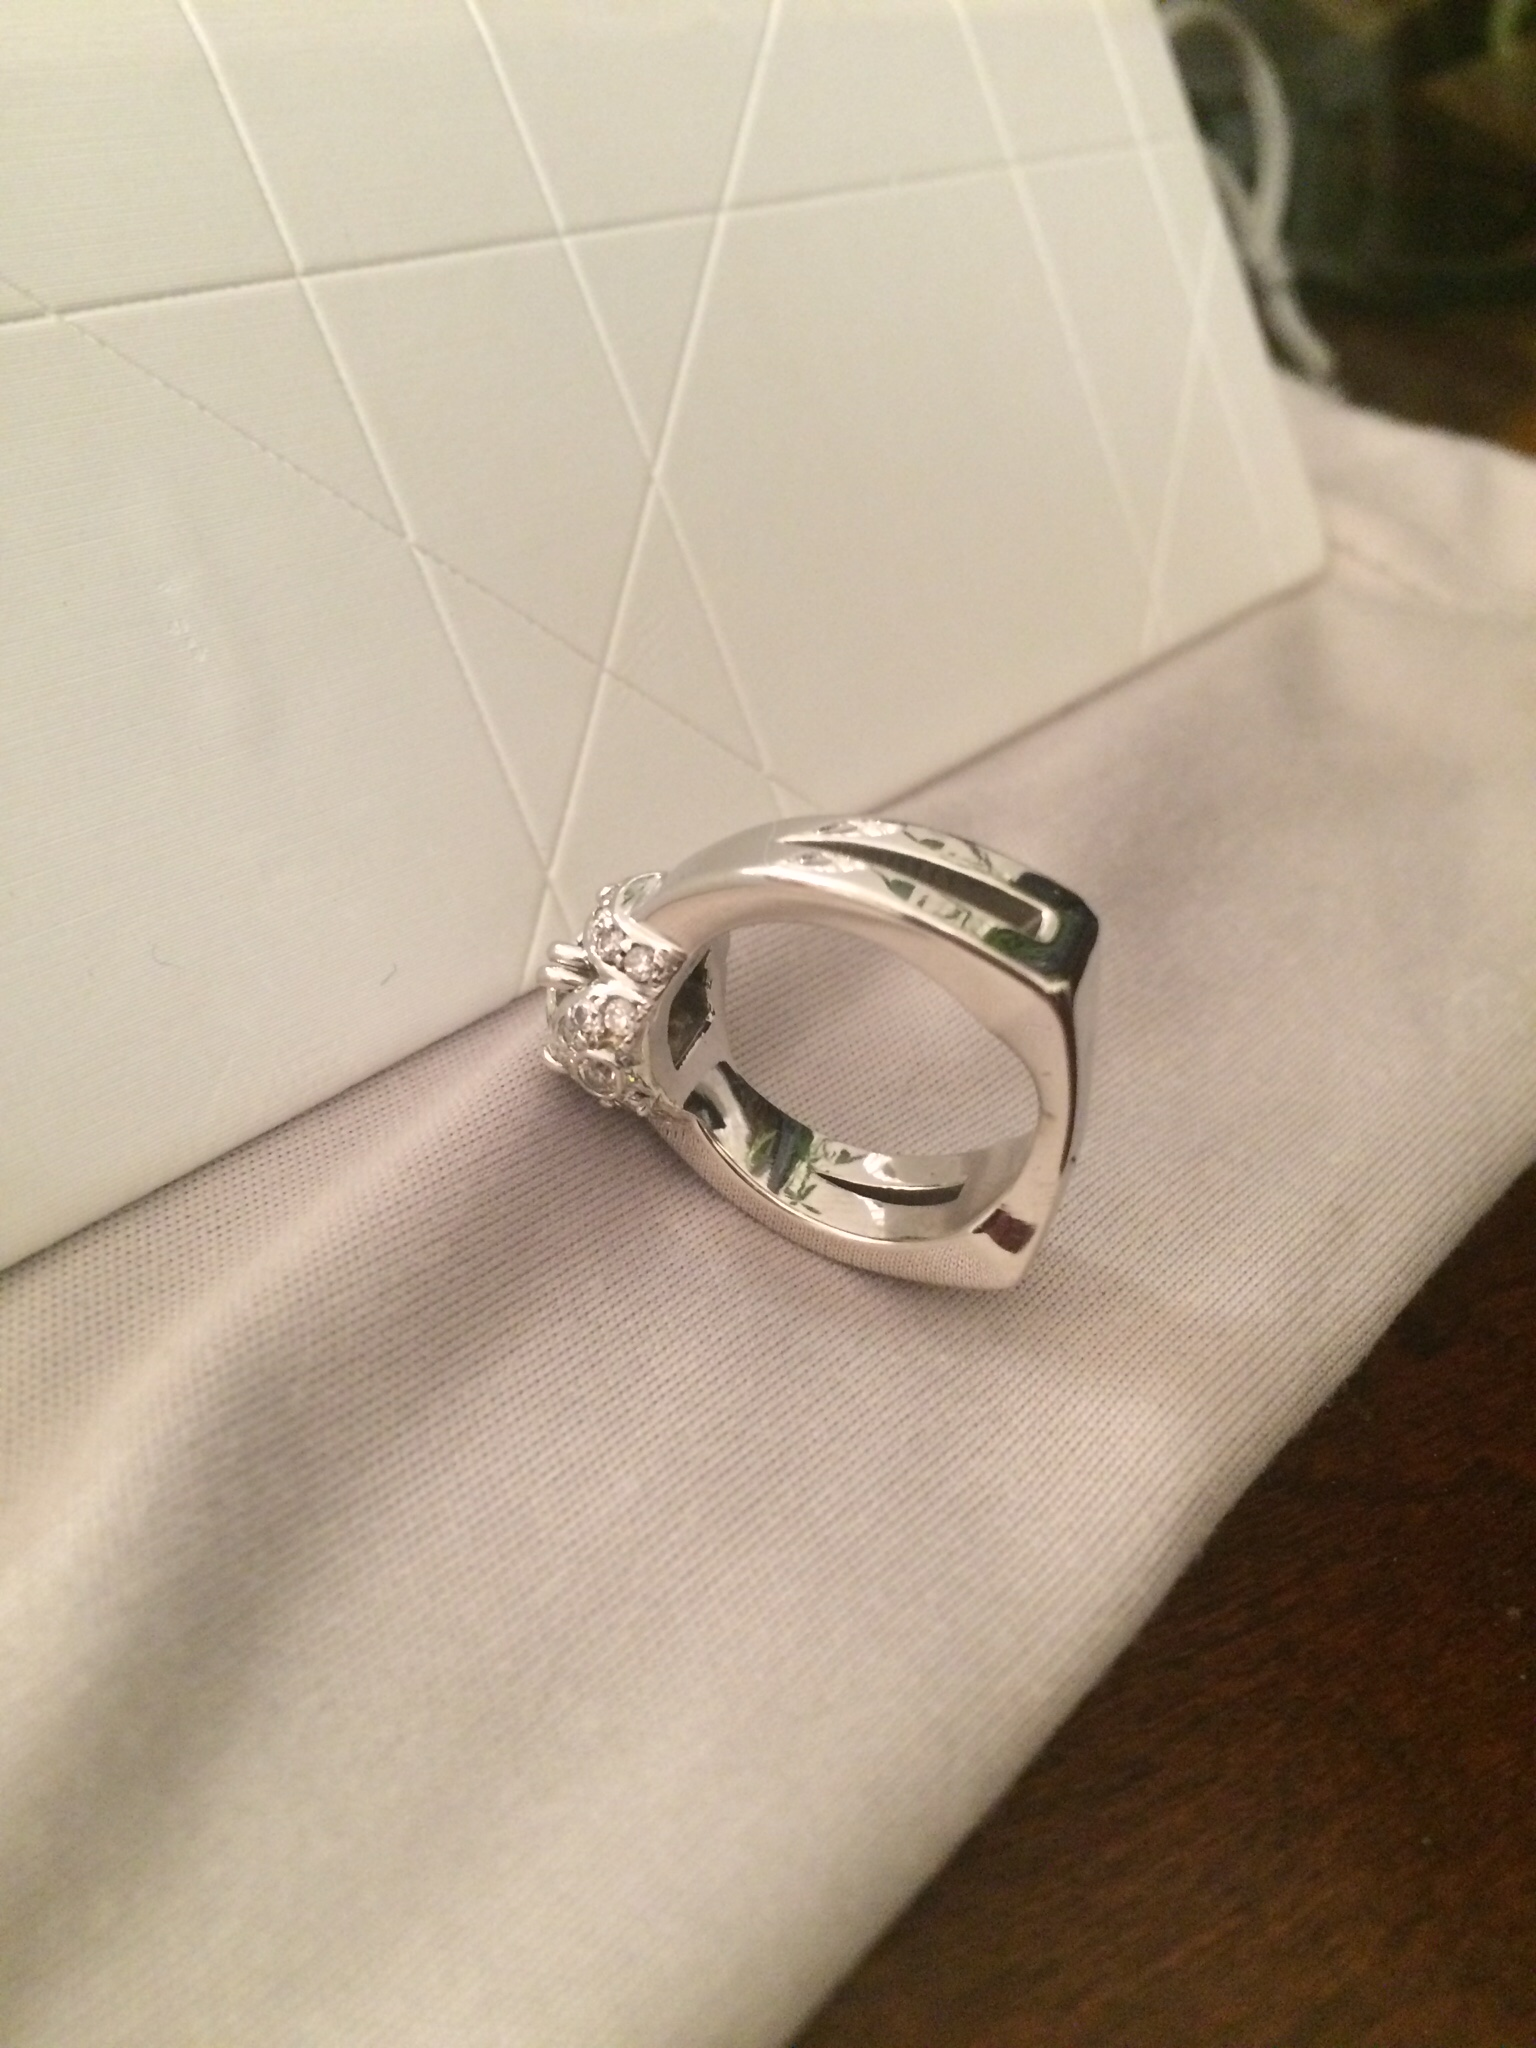 Radiant Diamond Engagement Ring - Victorian and Art Deco, Modern, too:  classic, chic, sophisticated